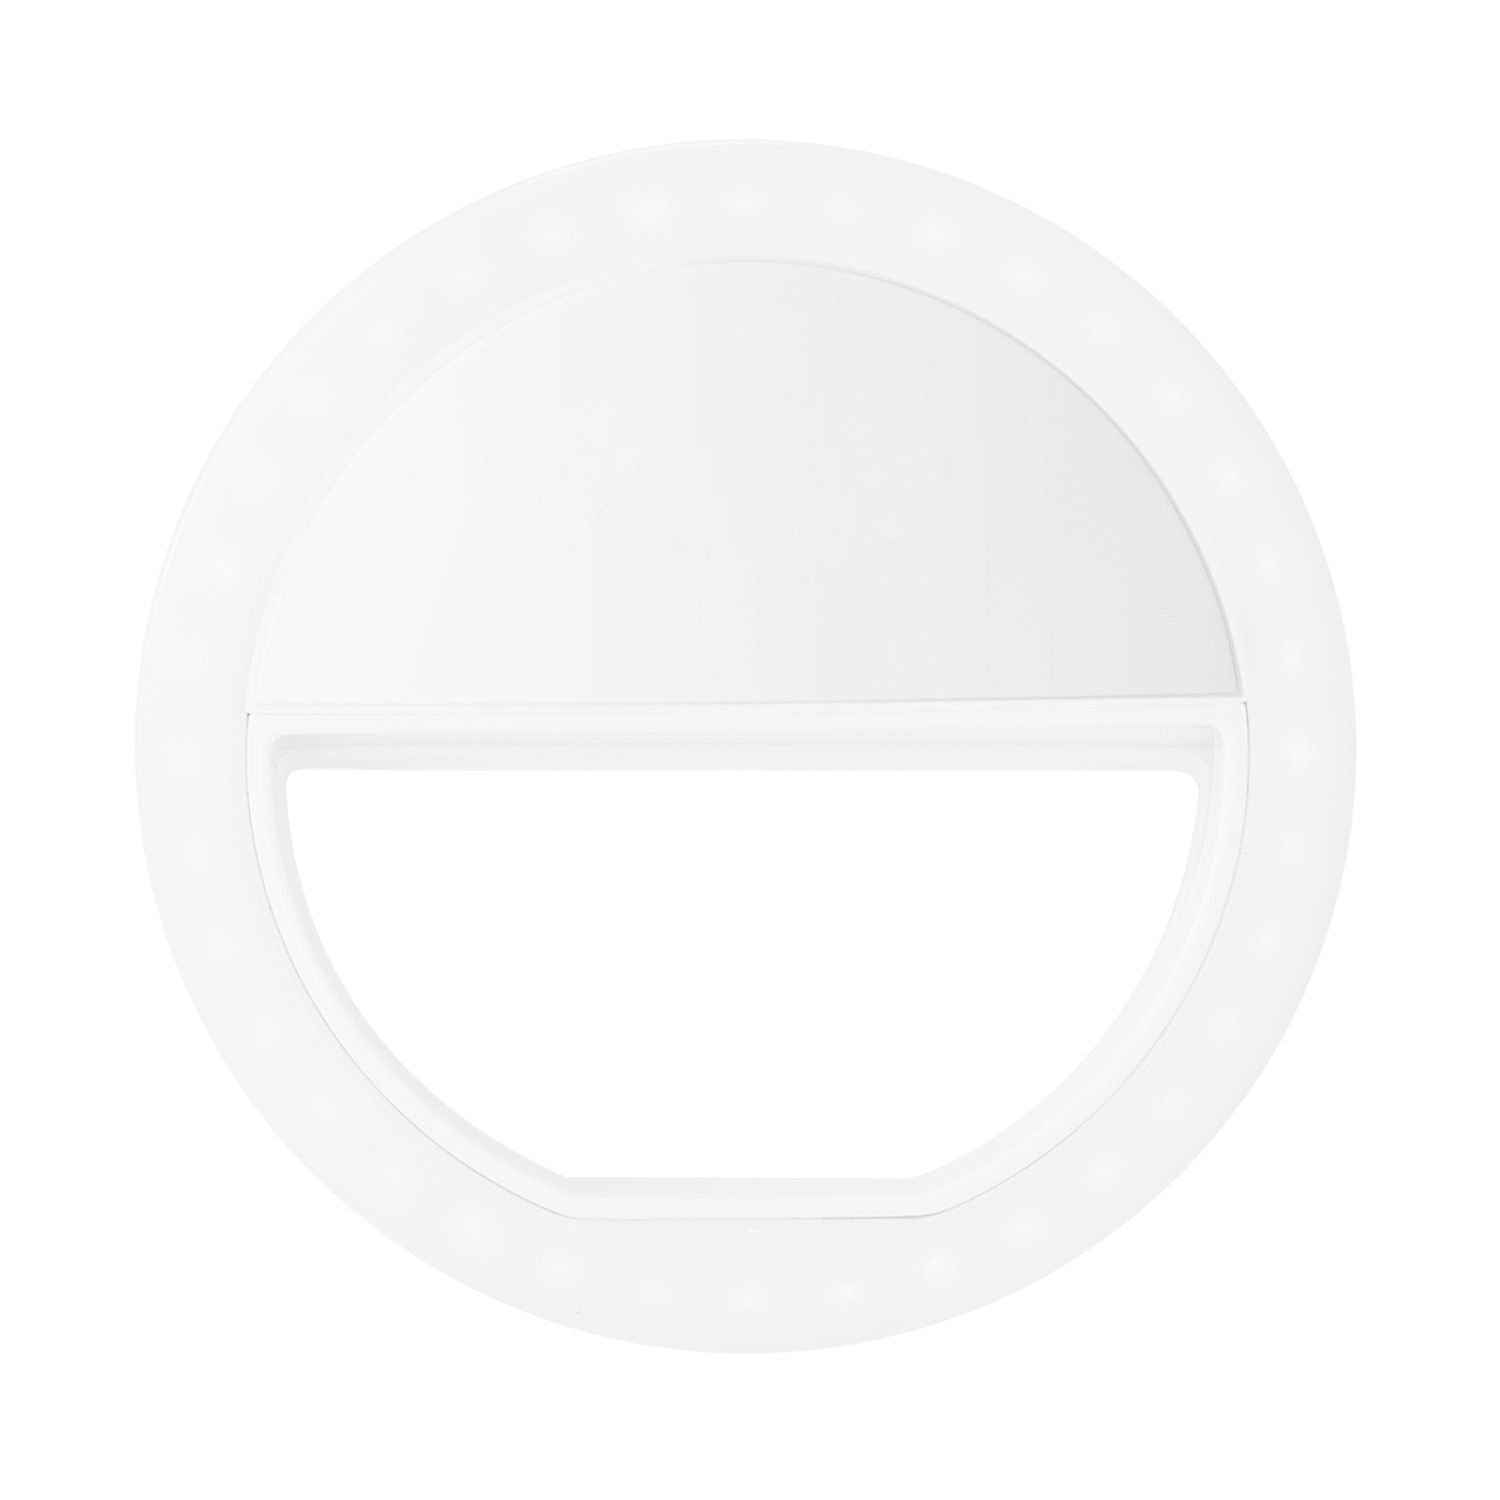 Selfie Ring Light, Portable Rechargeable 3-Level Brightness LED Beauty Fill in Ring Light Portable for Smartphone, Laptop (White) by Genuiskids (Image #2)